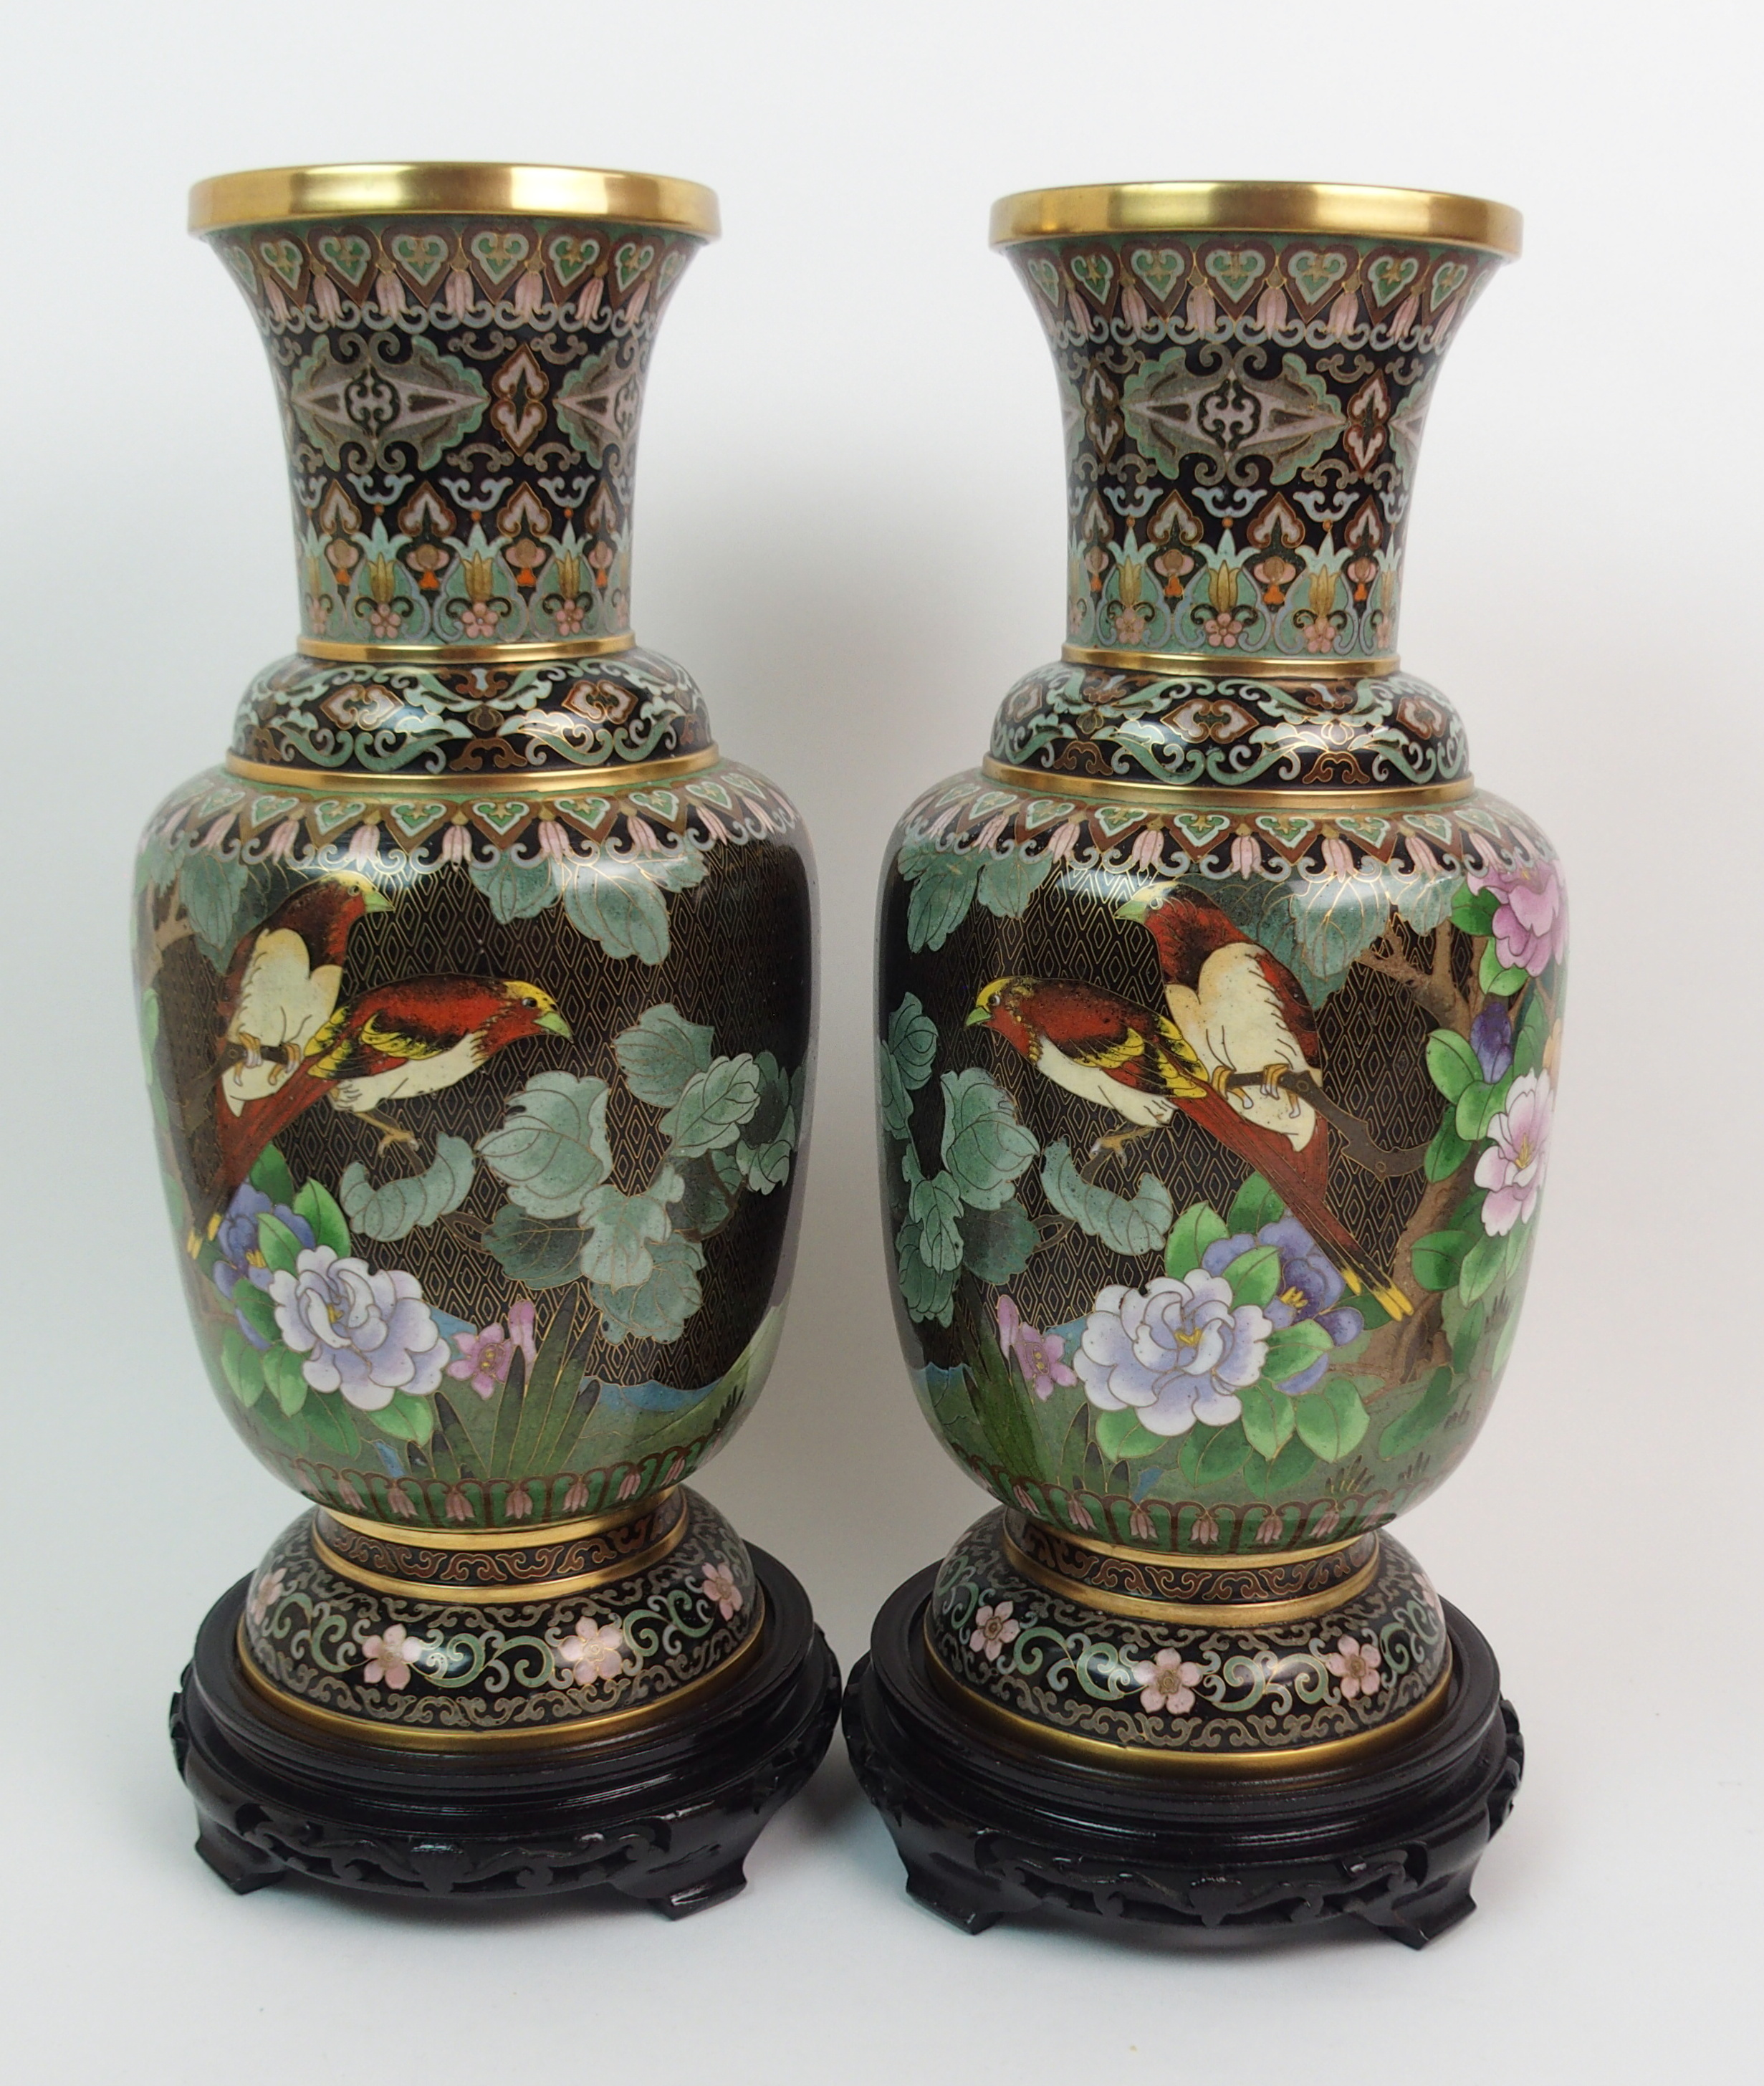 Lot 16 - A PAIR OF CHINESE CLOISONNE BALUSTER VASES decorated with flowers and diaper, wood stands, 38cm high